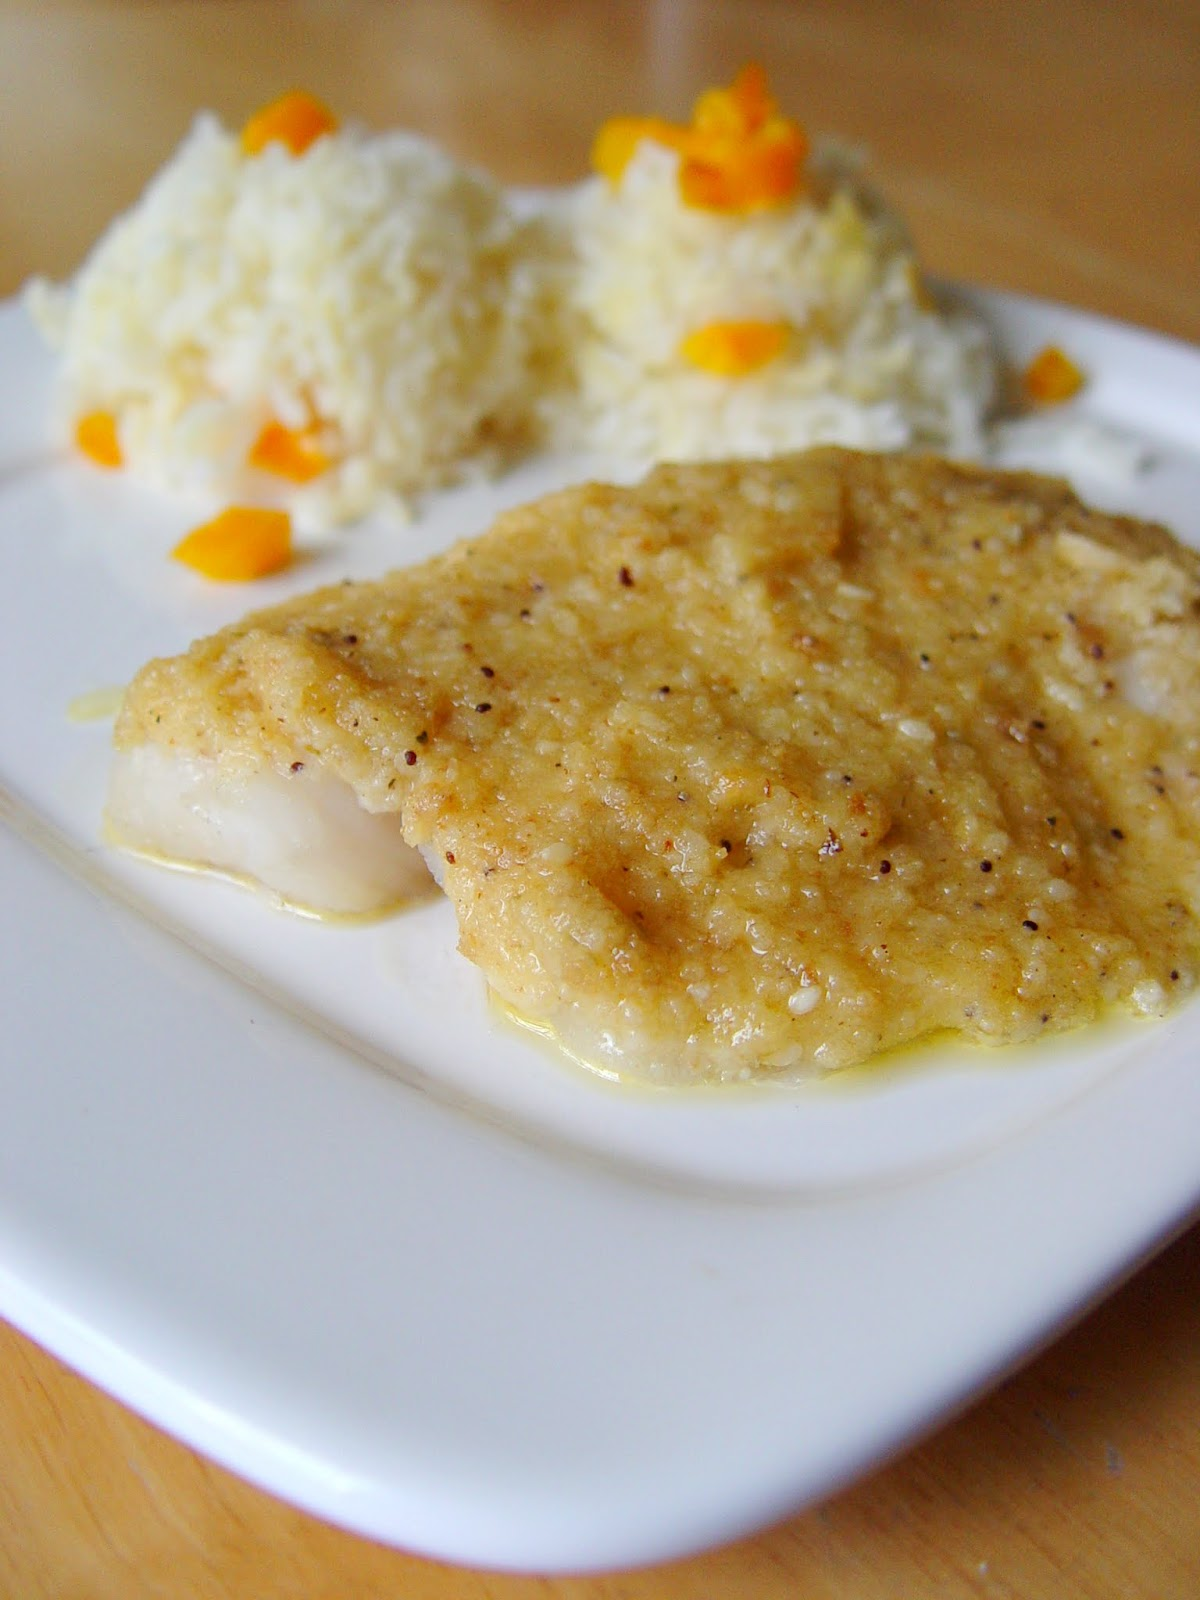 So creative easy baked parmesan fish tilapia for Baked parmesan fish